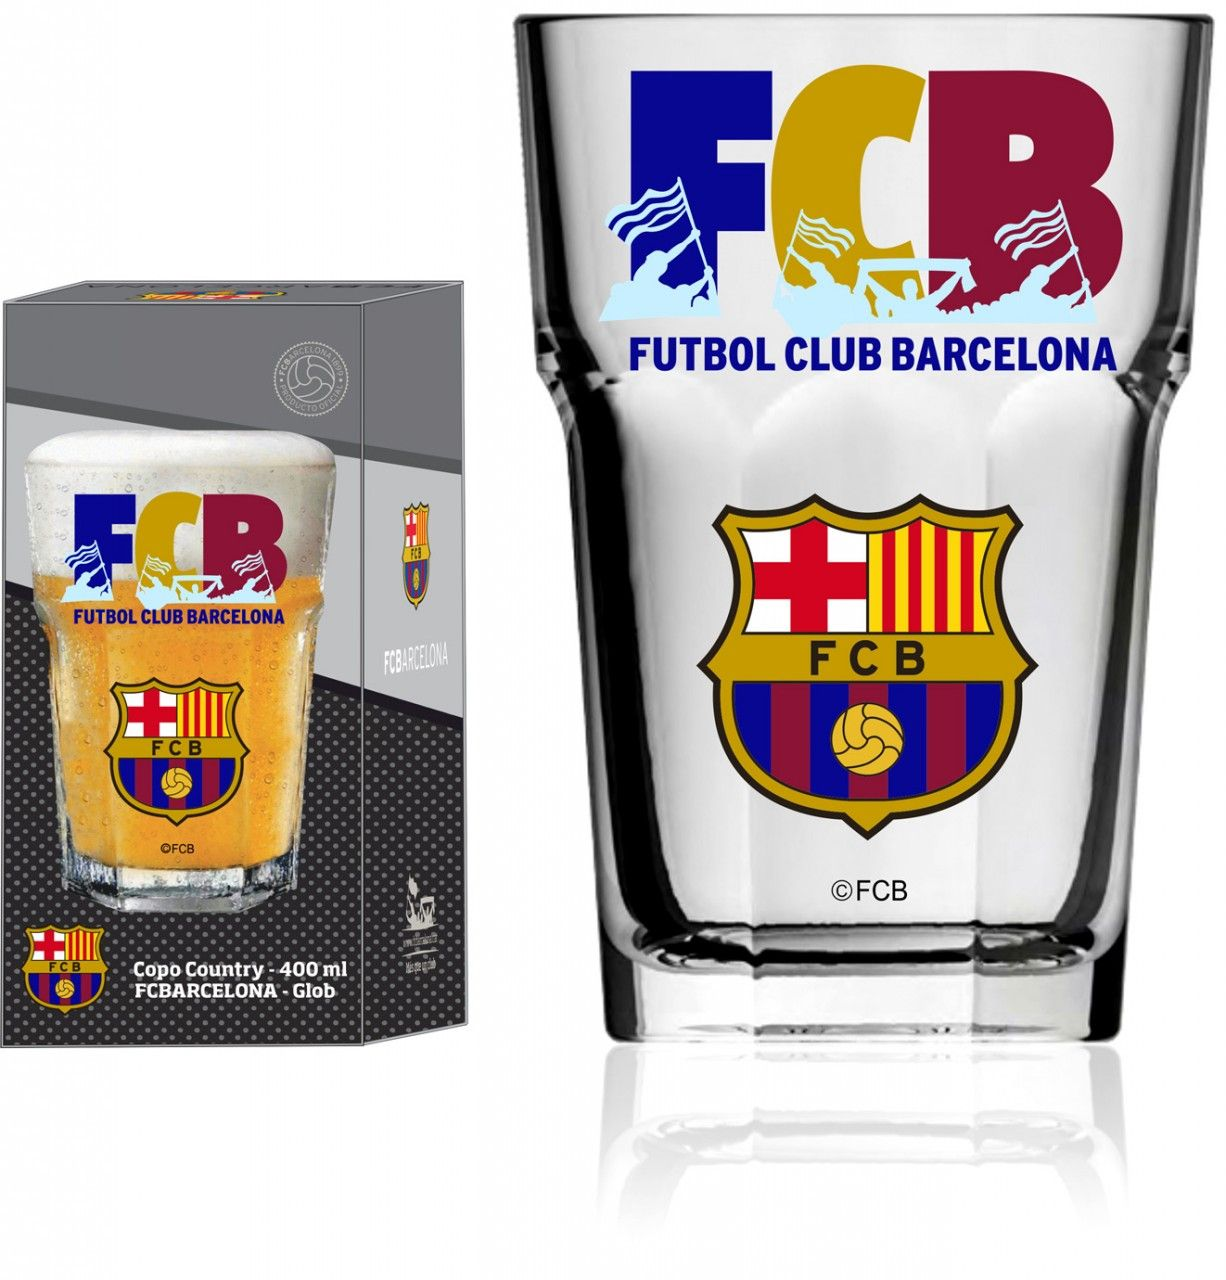 Copo Country Barcelona FCB - 400ml